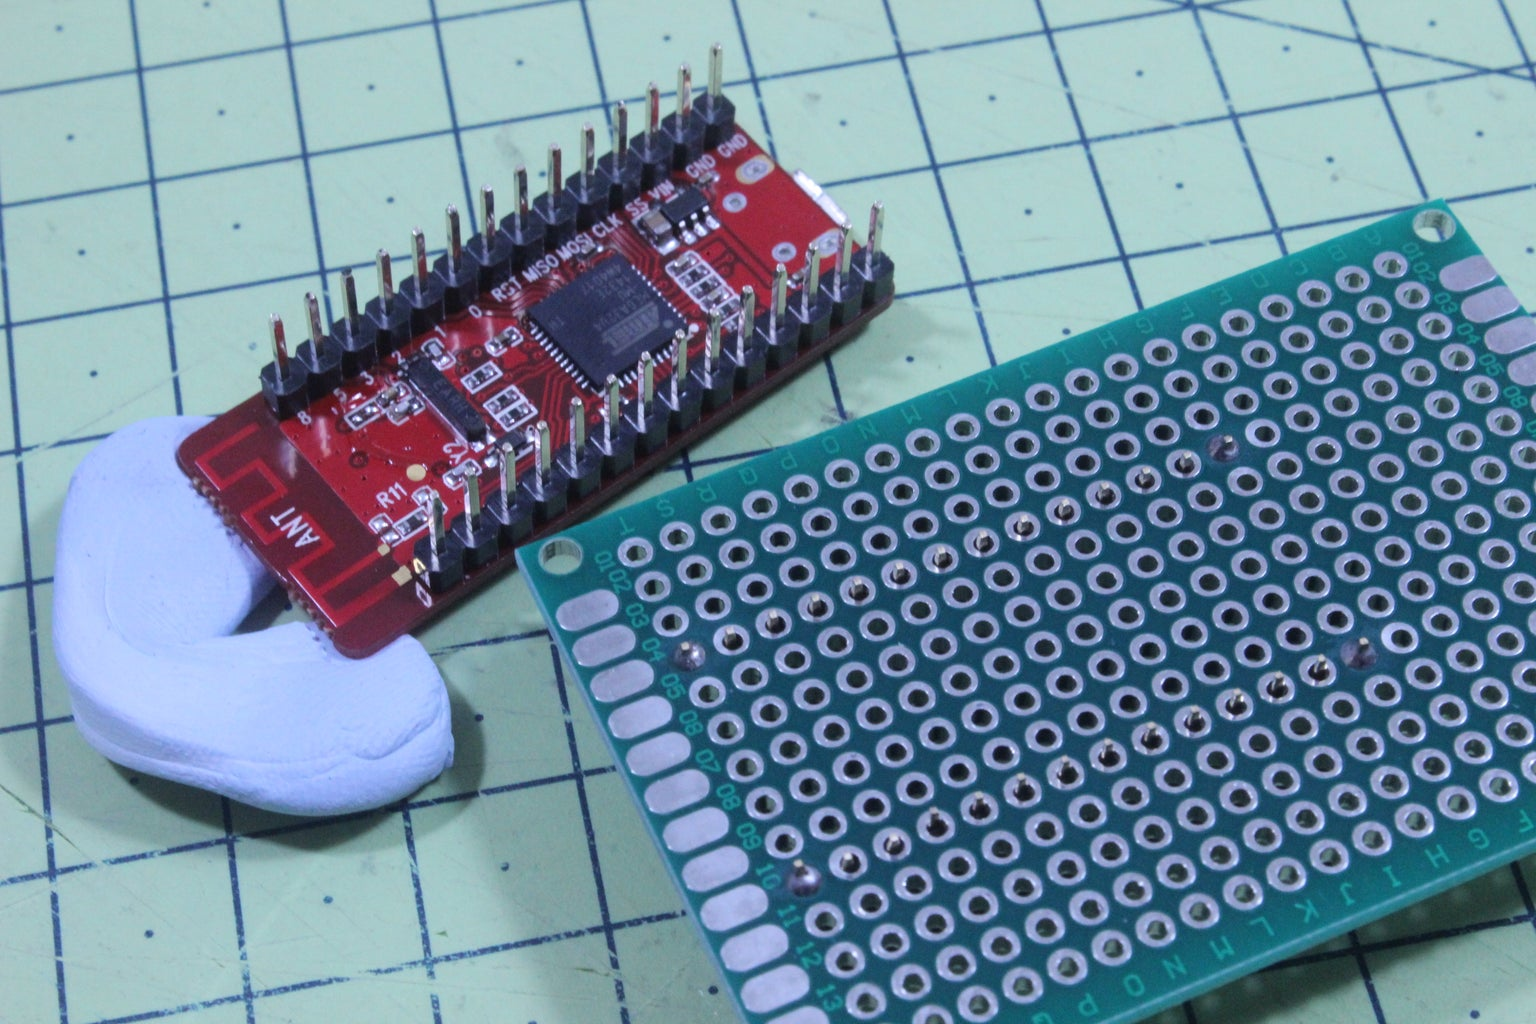 Mount the Socket to the Protoboard